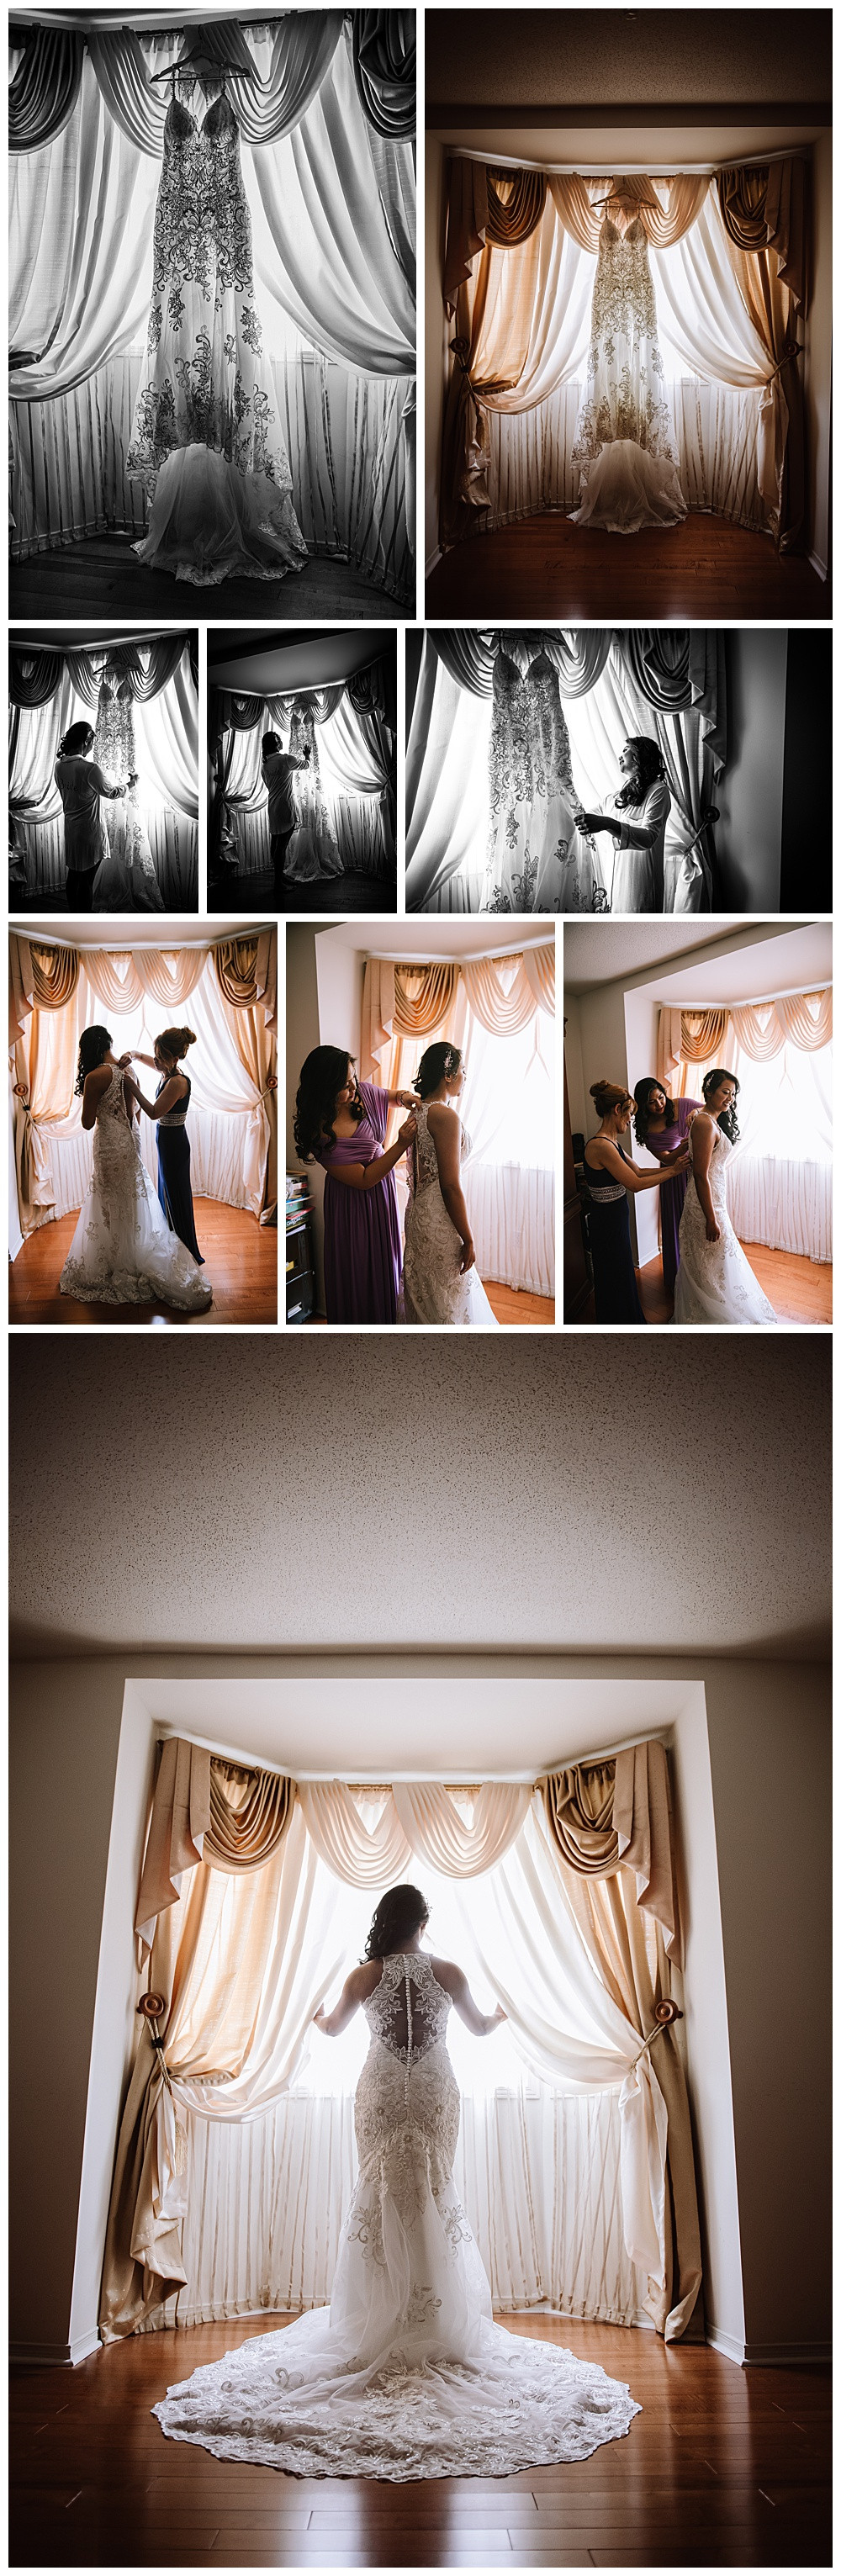 Wedding Dress, Bride with Dress, Maid of Honour, Mother of Bride, Bride in Window